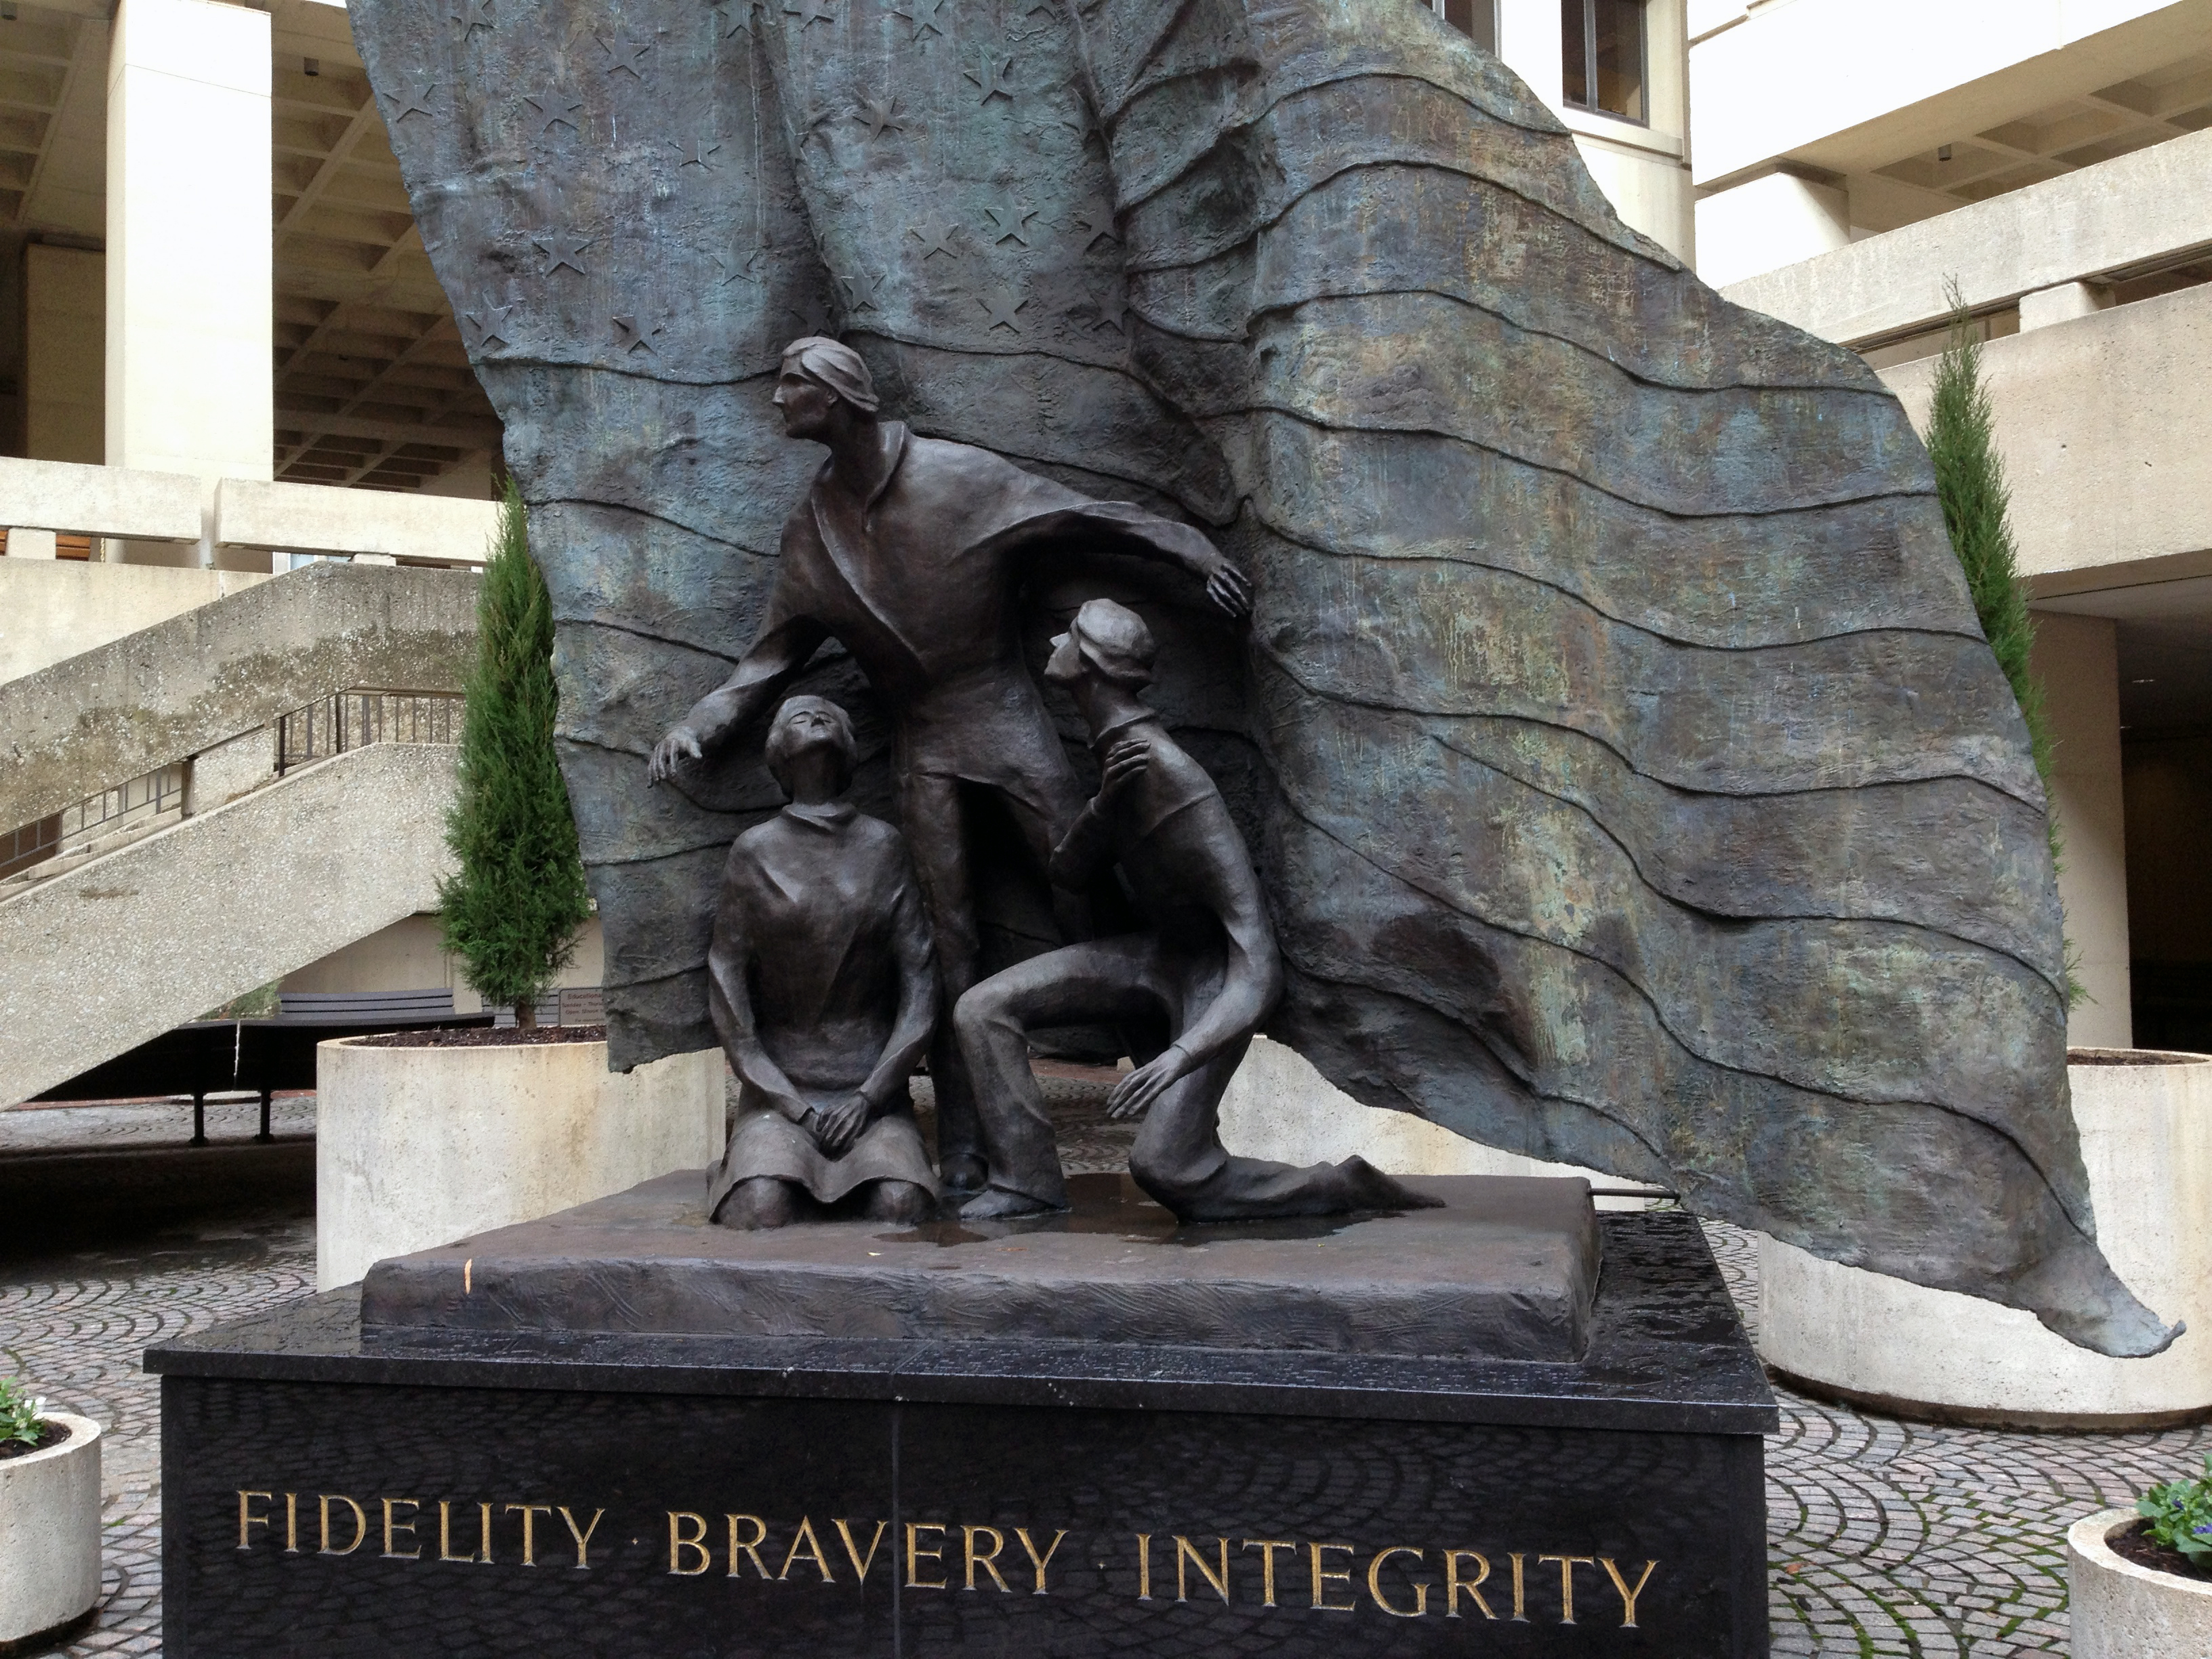 Sculpture, Fidelity, Bravery, Integrity at the J. Edgar Hoover FBI Headquarters, Washington, D.C.